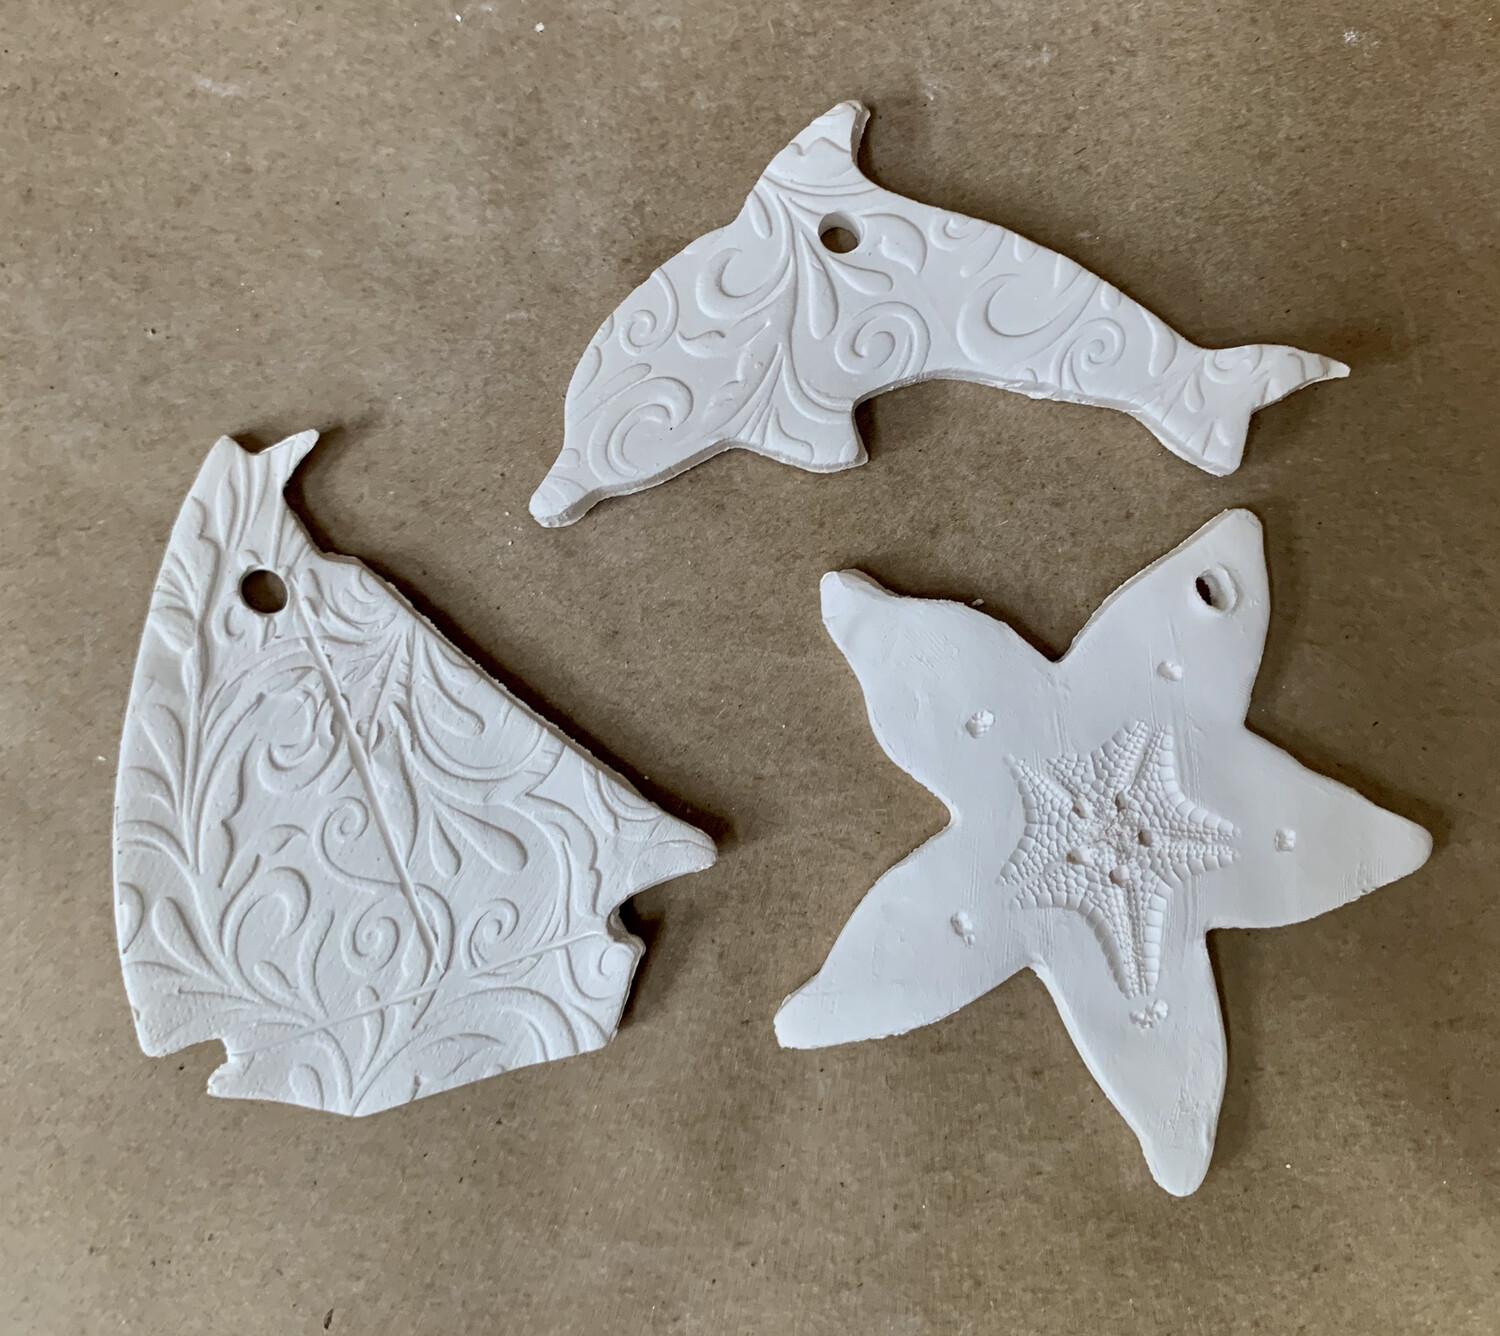 NO FIRE Paint Your Own Pottery Kit -  Ceramic Set of 3 Ocean Christmas Ornaments - Dolphin, Starfish, Sailboat - Acrylic Paint Kit